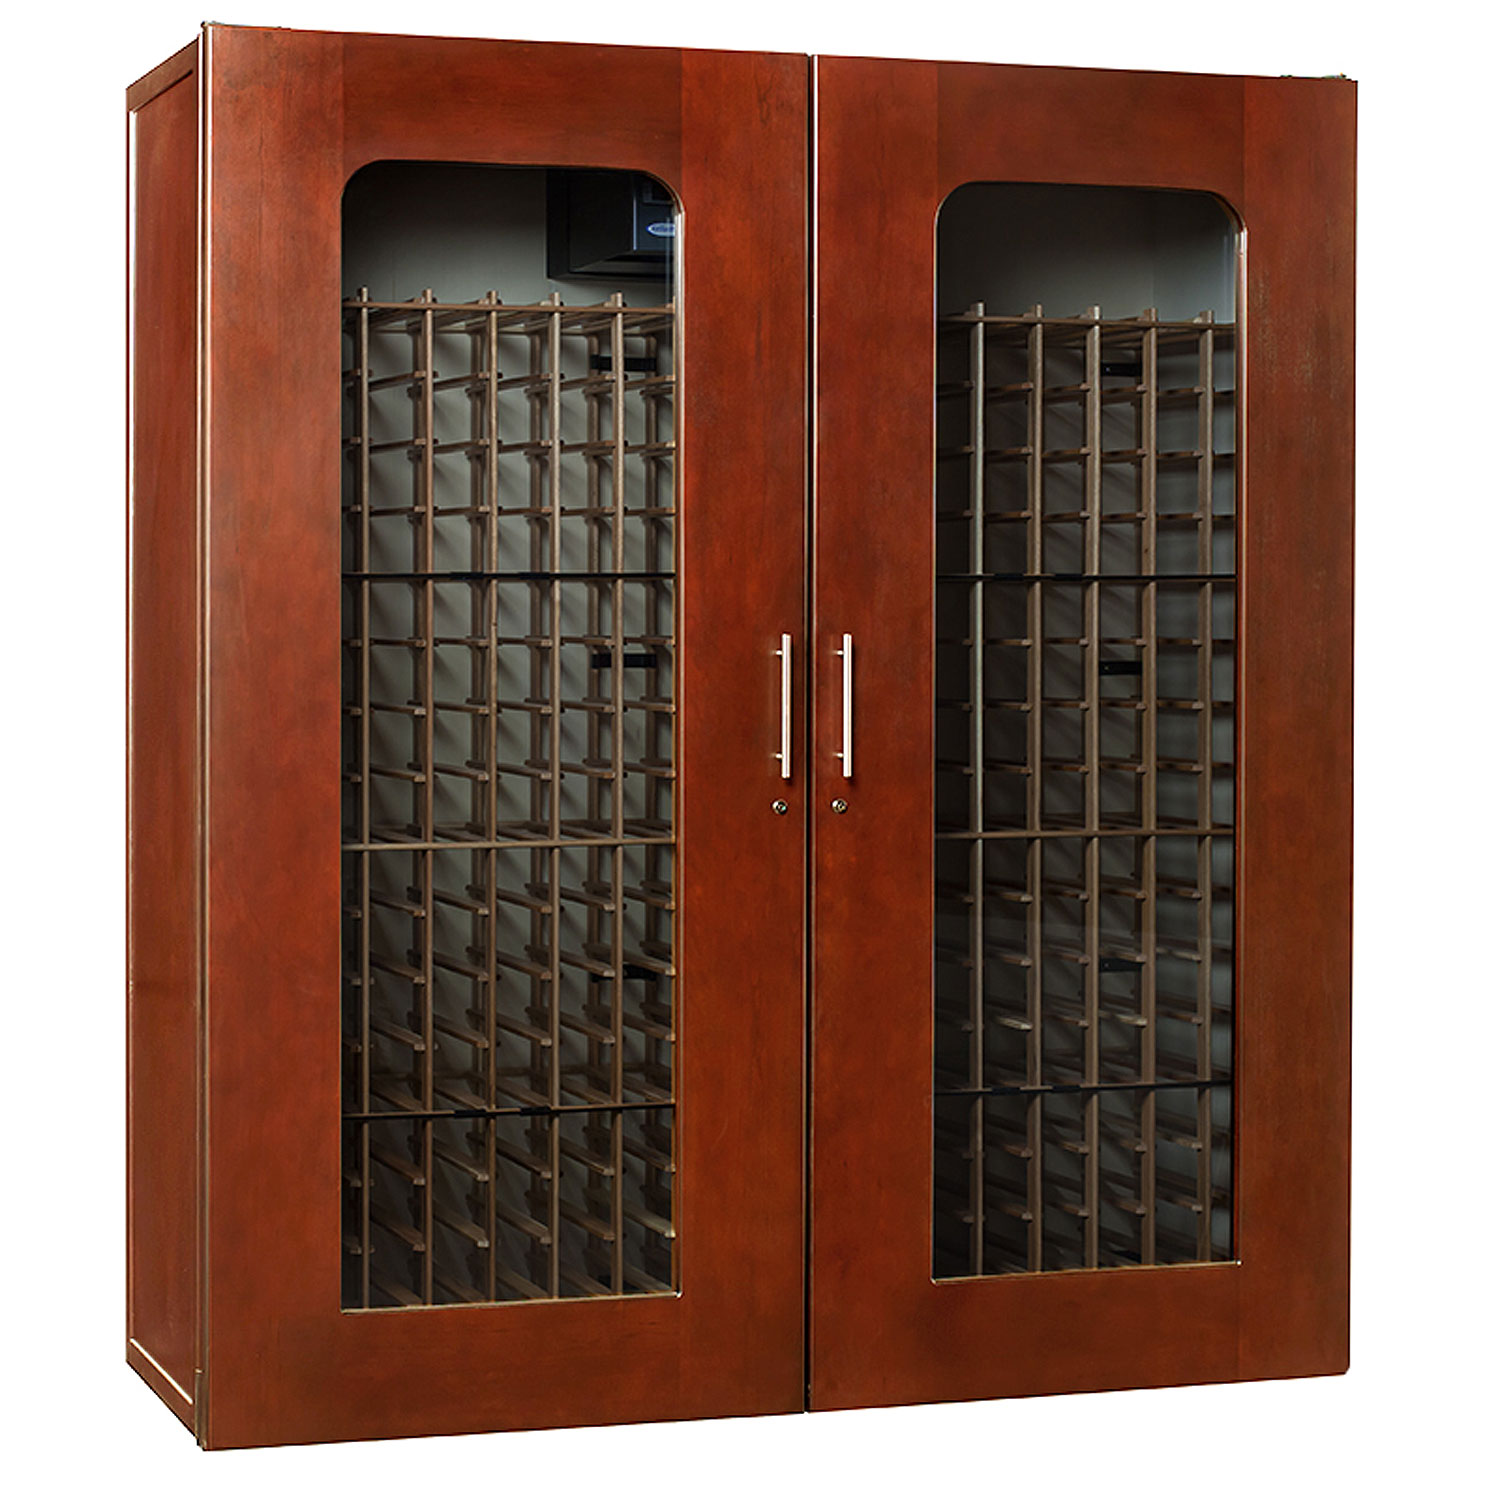 Le Cache Model 5200 Wine Cellar  sc 1 st  BeverageFactory.com & Le Cache 5200 Premium Wine Cellar Cabinet - Classic Cherry Finish ...